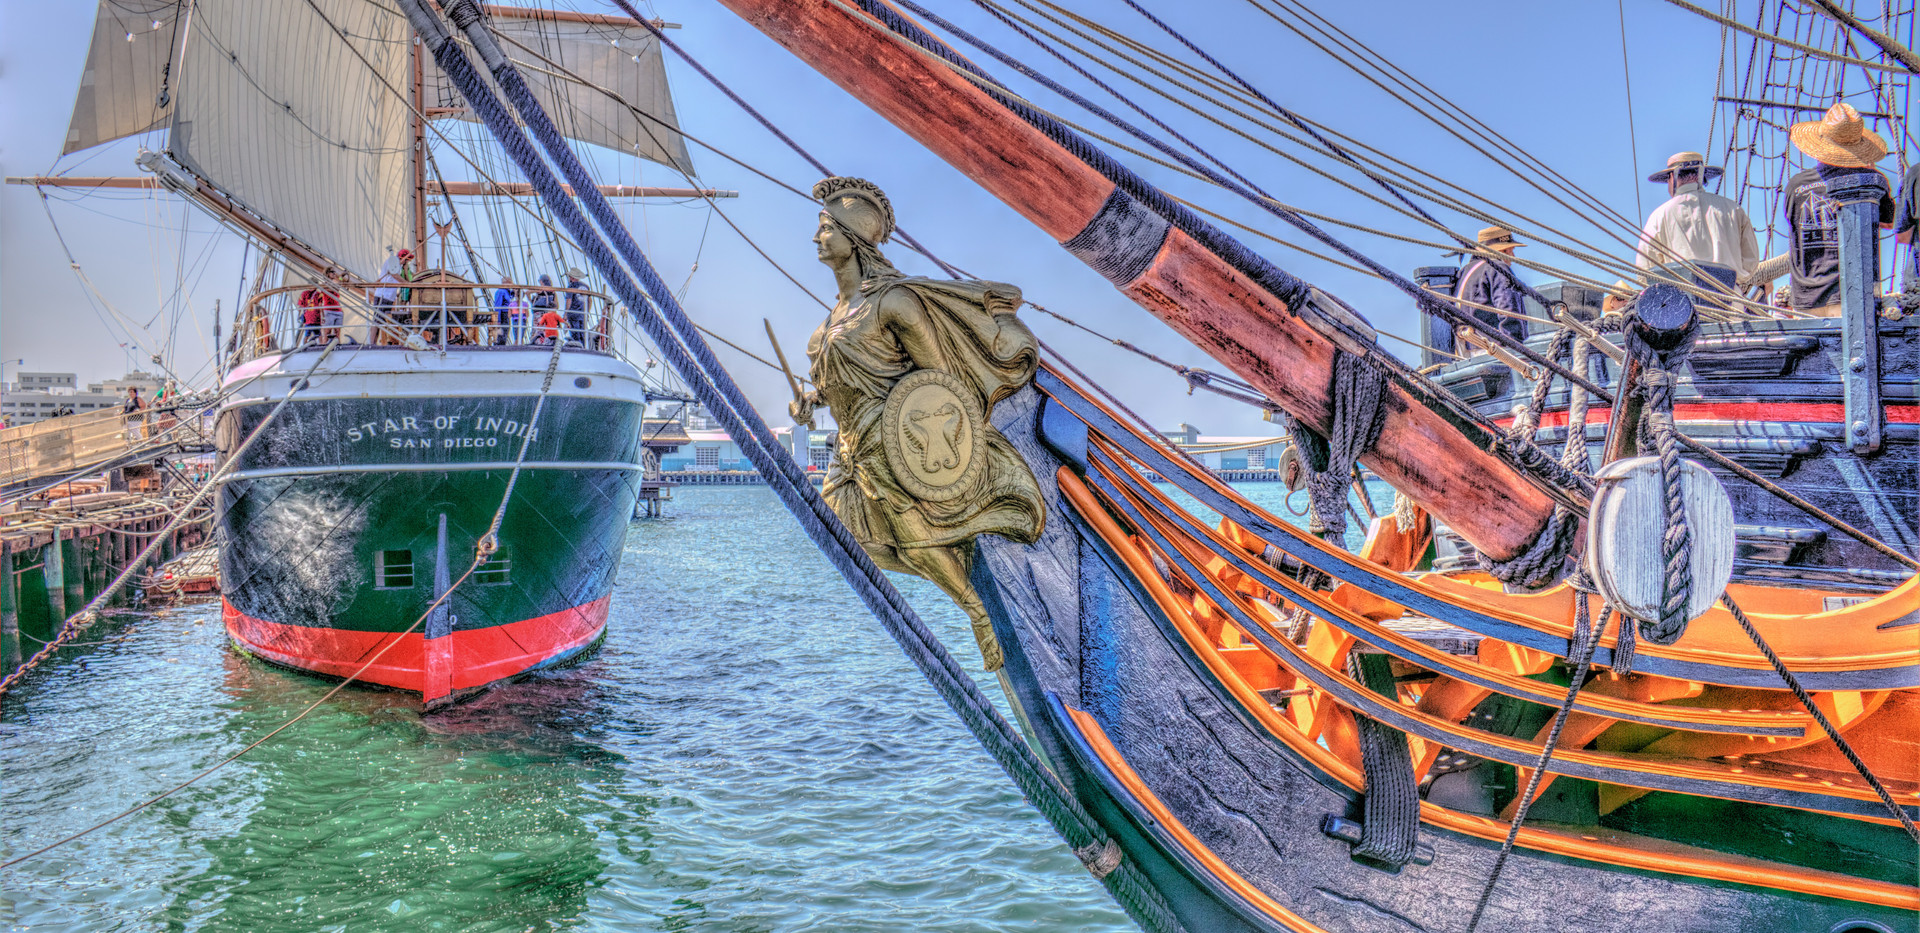 Star of India and Surprise 09-05-15